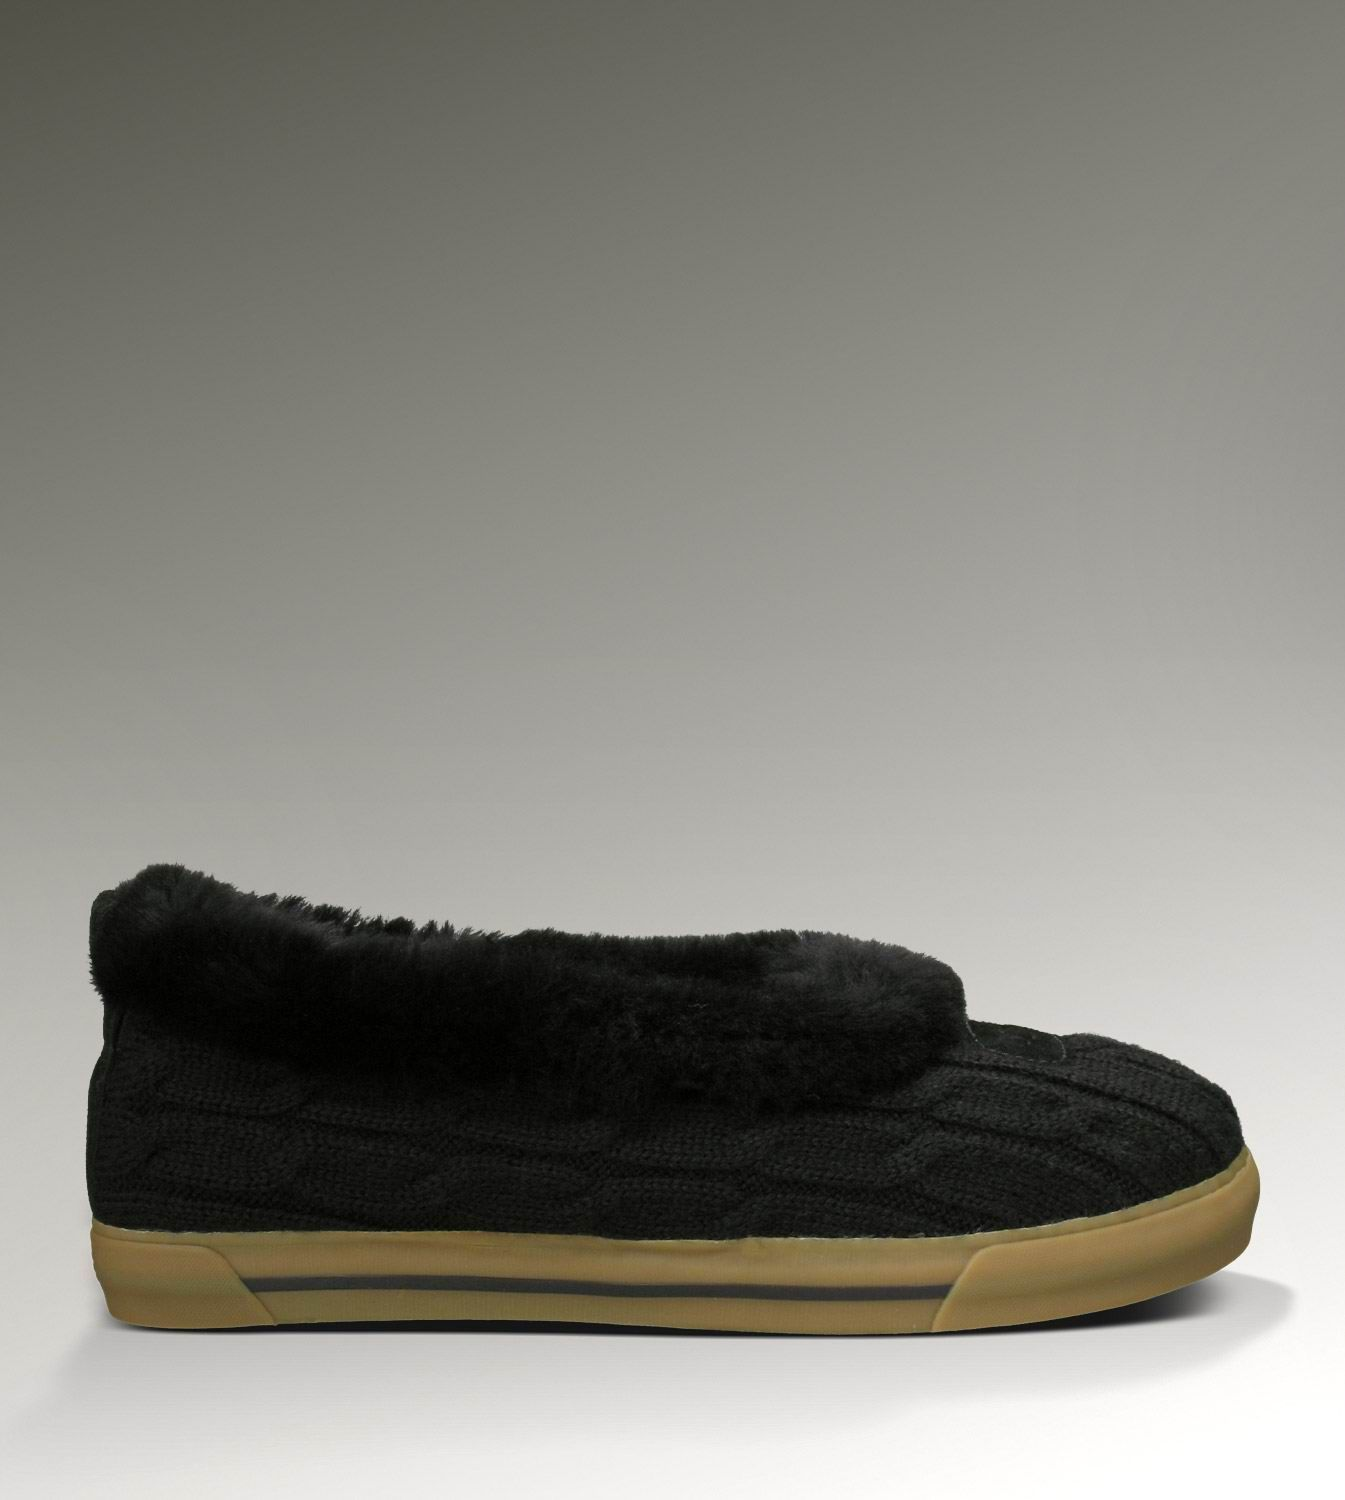 43e7230619b Rylan Knit 3314 Black Slippers | UGG | Black slippers, Slippers, Uggs